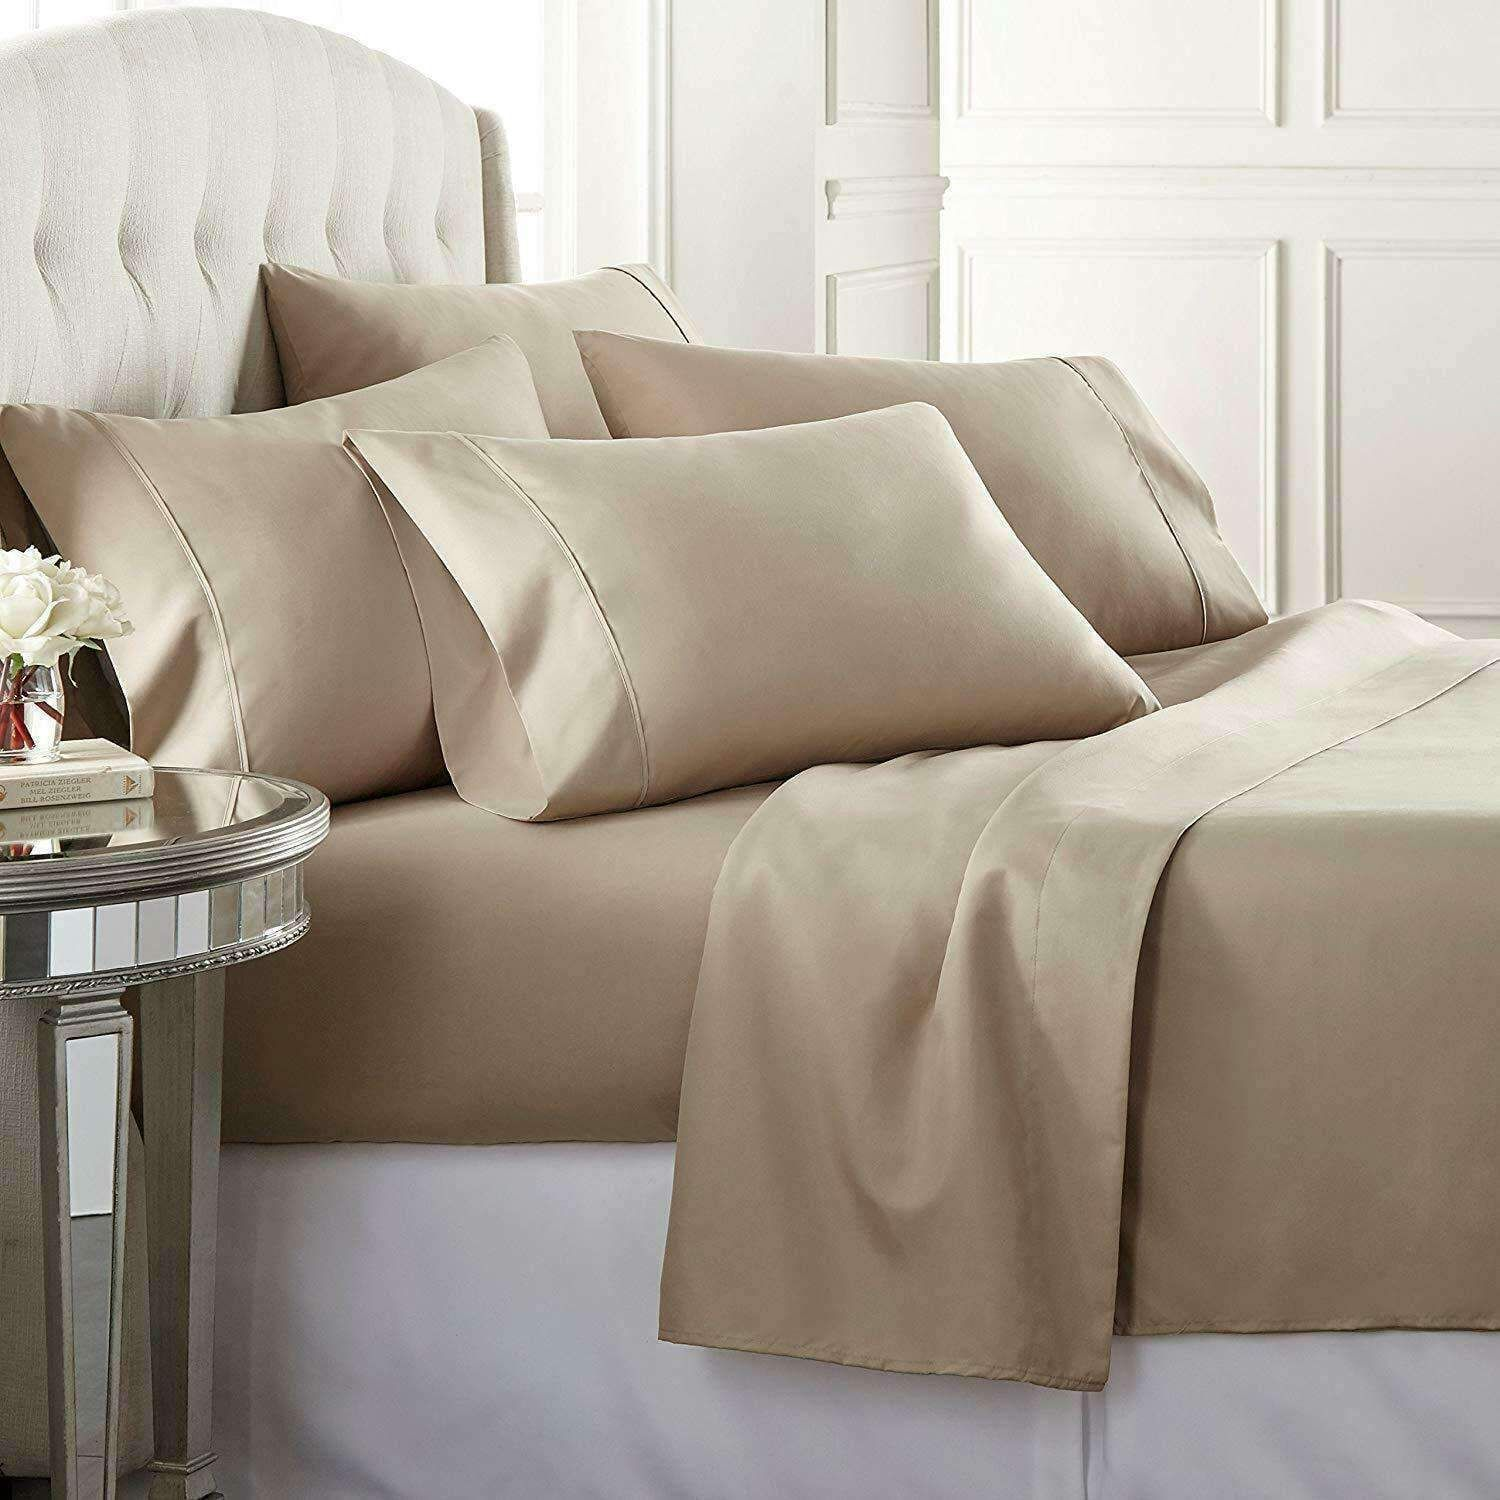 Queen Size 425 Thread Count 4 Piece Set Hotel Luxury Bed Sheets